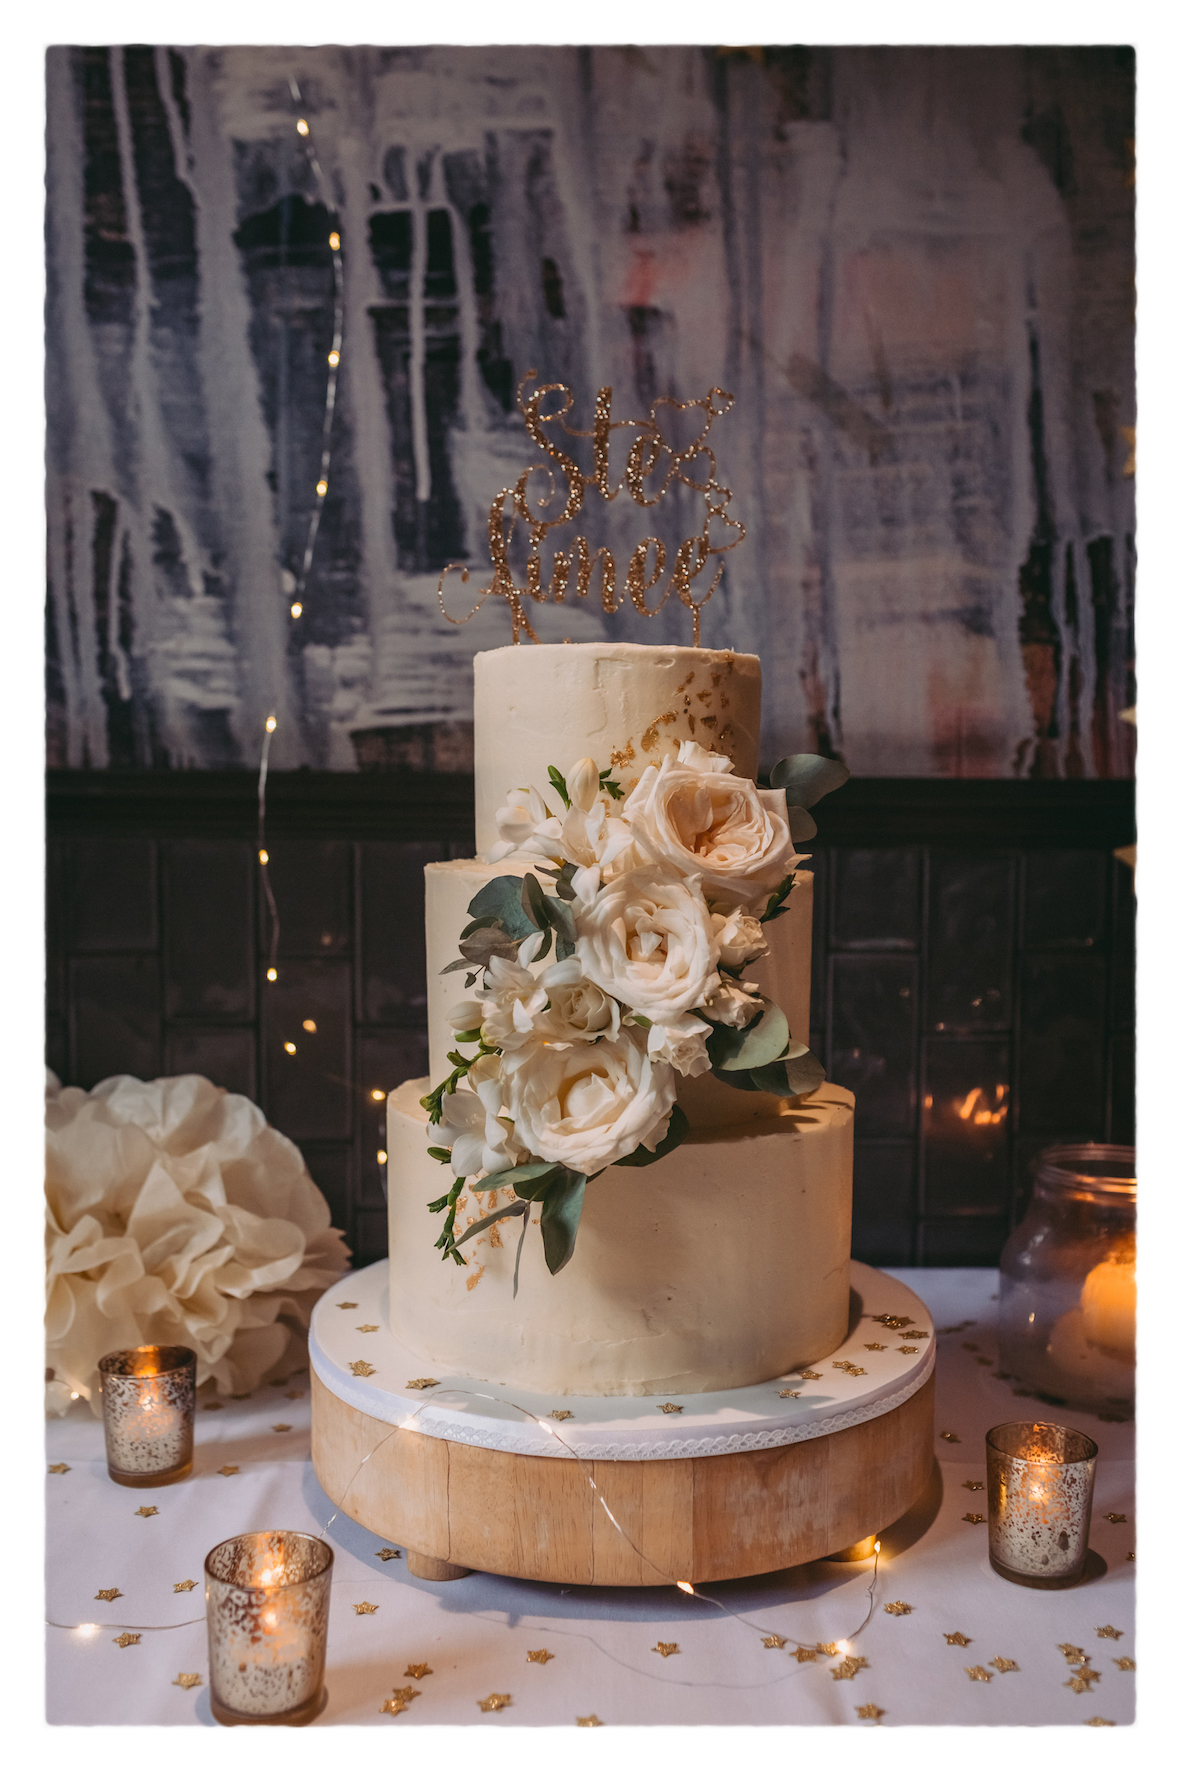 Buttercream wedding cake decorated with gold and fresh flowers